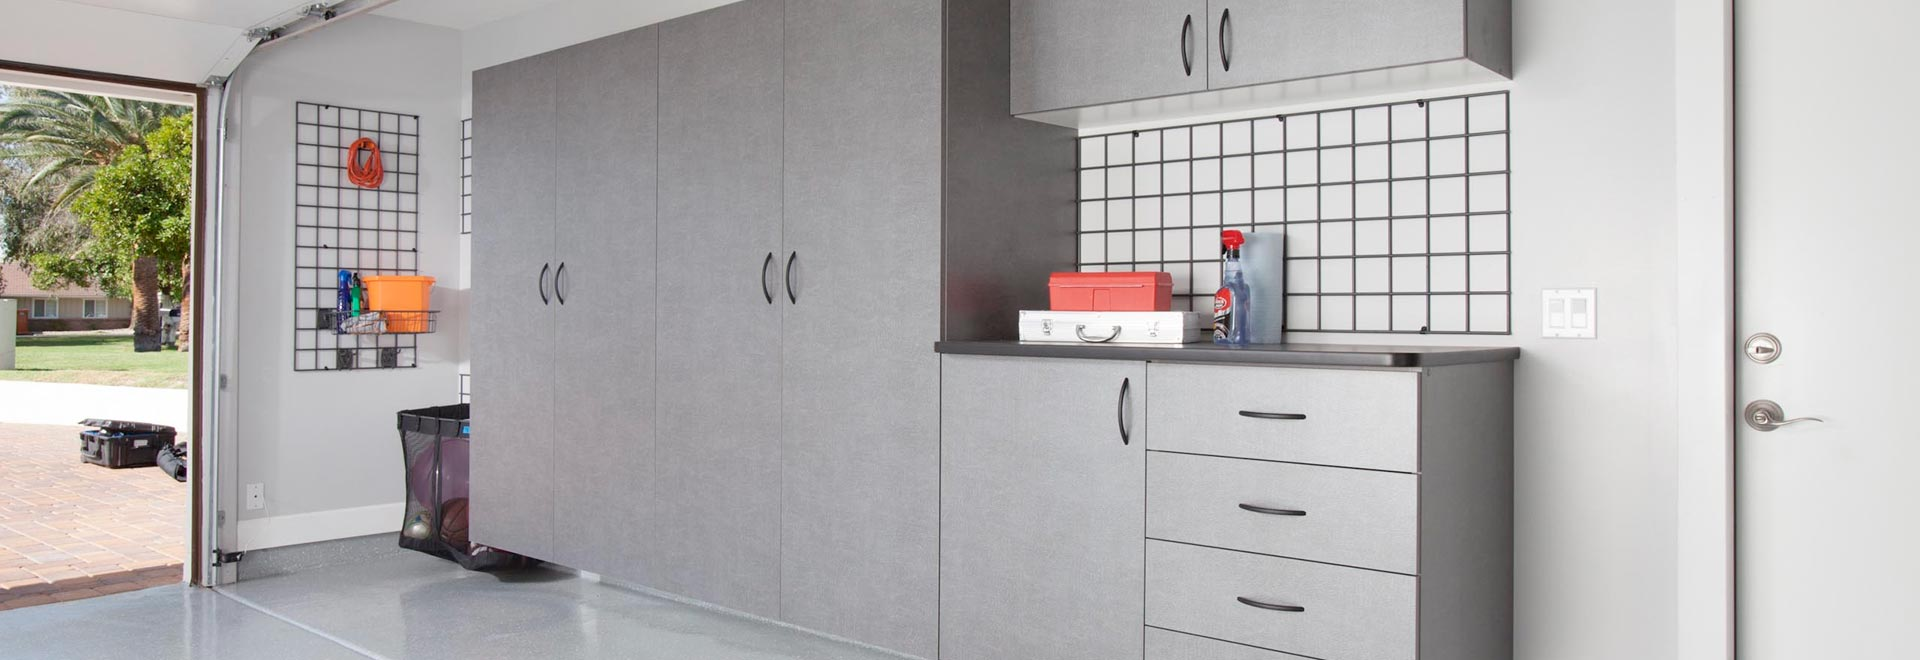 Metallic Garage Cabinets